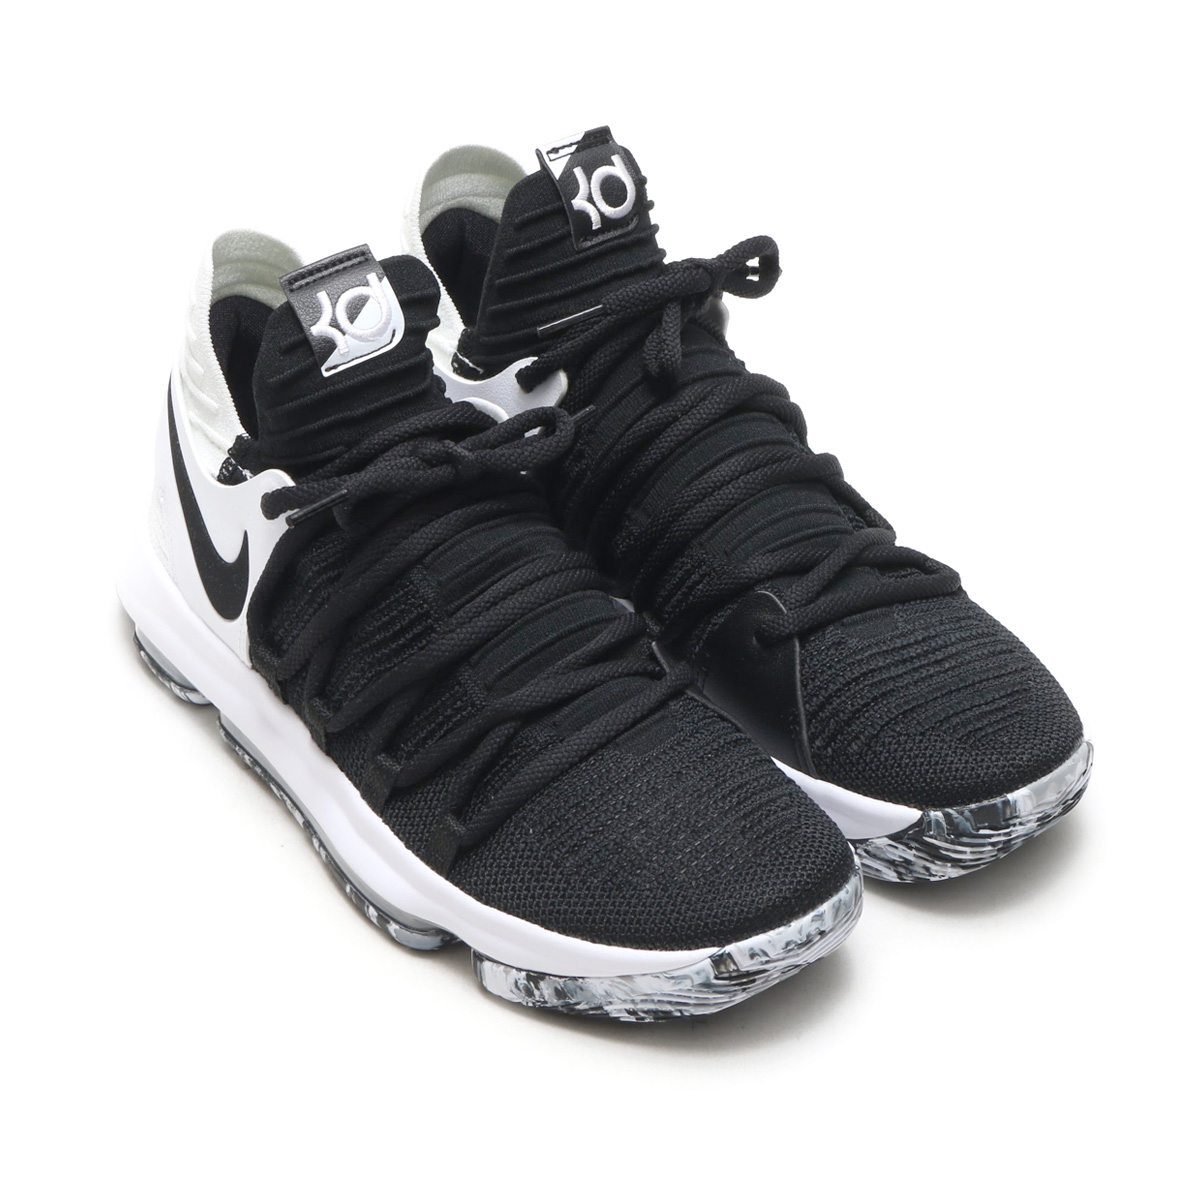 b2eee070b09b30 ... ☆ maximum point 10 times that is targeted for all articles! NIKE ZOOM  KD10 EP (Nike zoom KD 10 EP) (BLACK BLACK-WHITE) 18SP-S